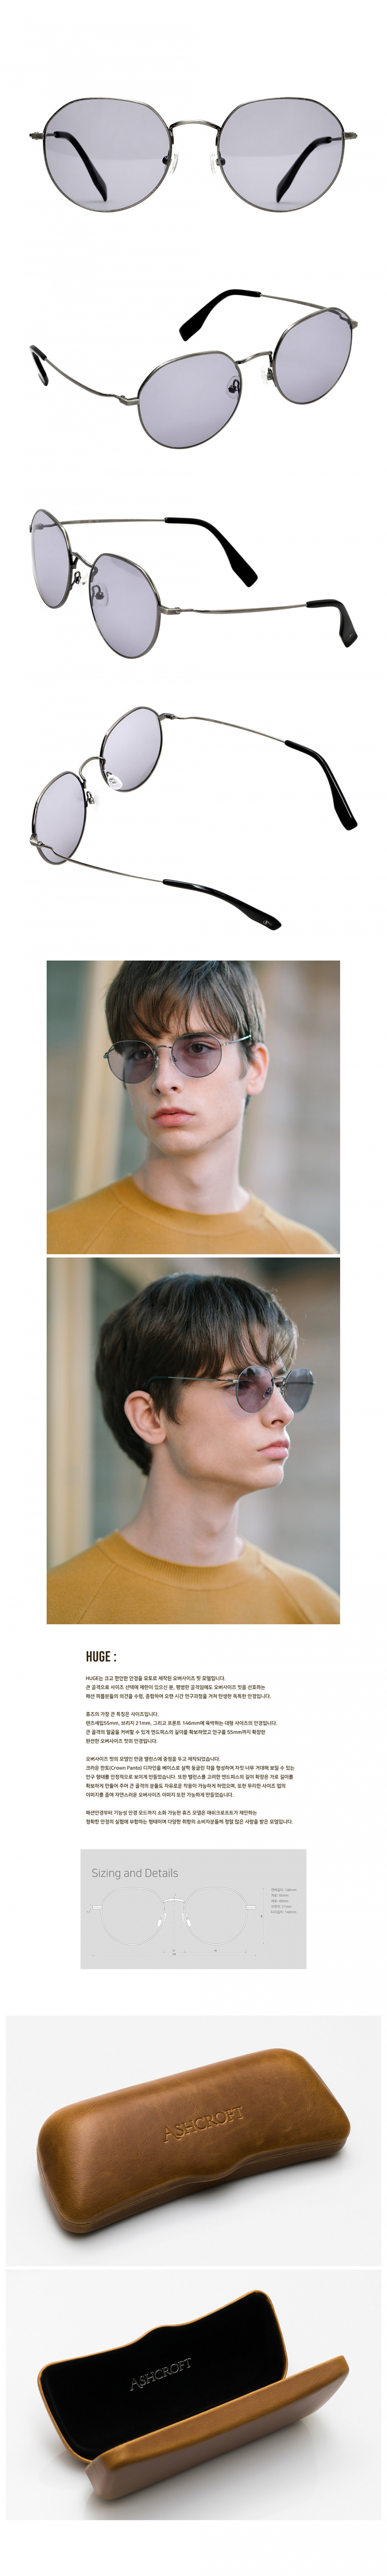 애쉬크로프트(ASHCROFT) HUGE - Silver Sunglasses(Gray Lens)